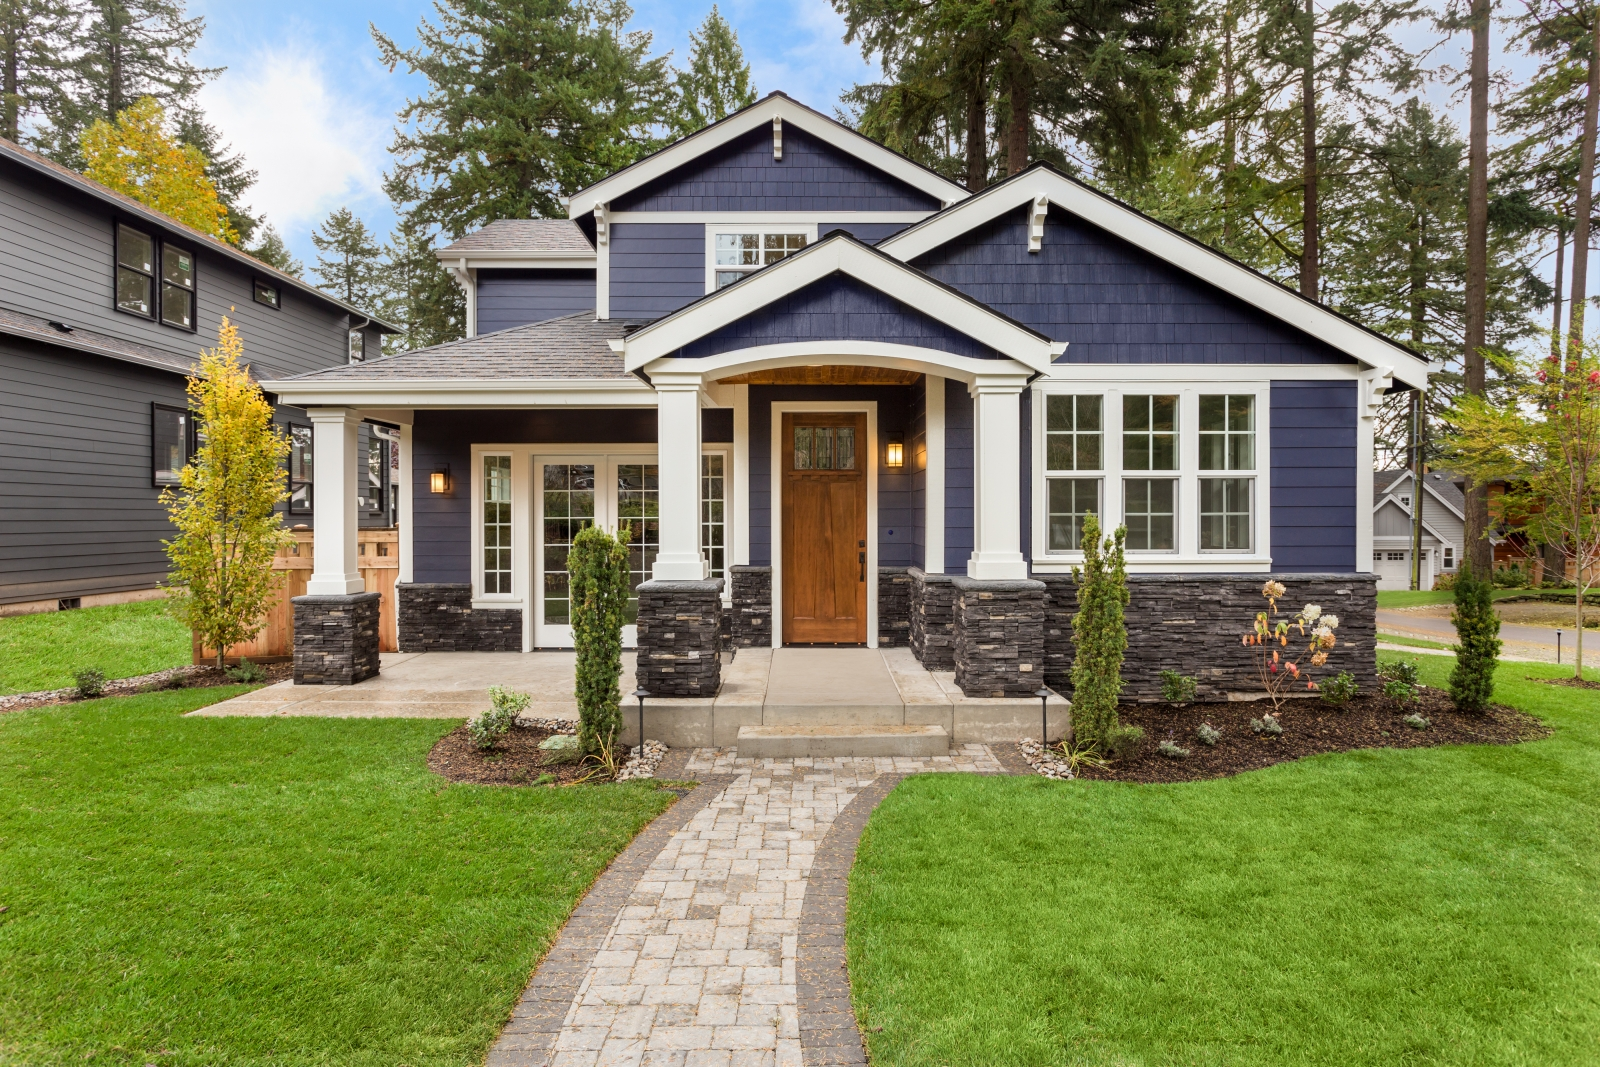 Blue traditional bungalow house with a slate gray paint and white edging.